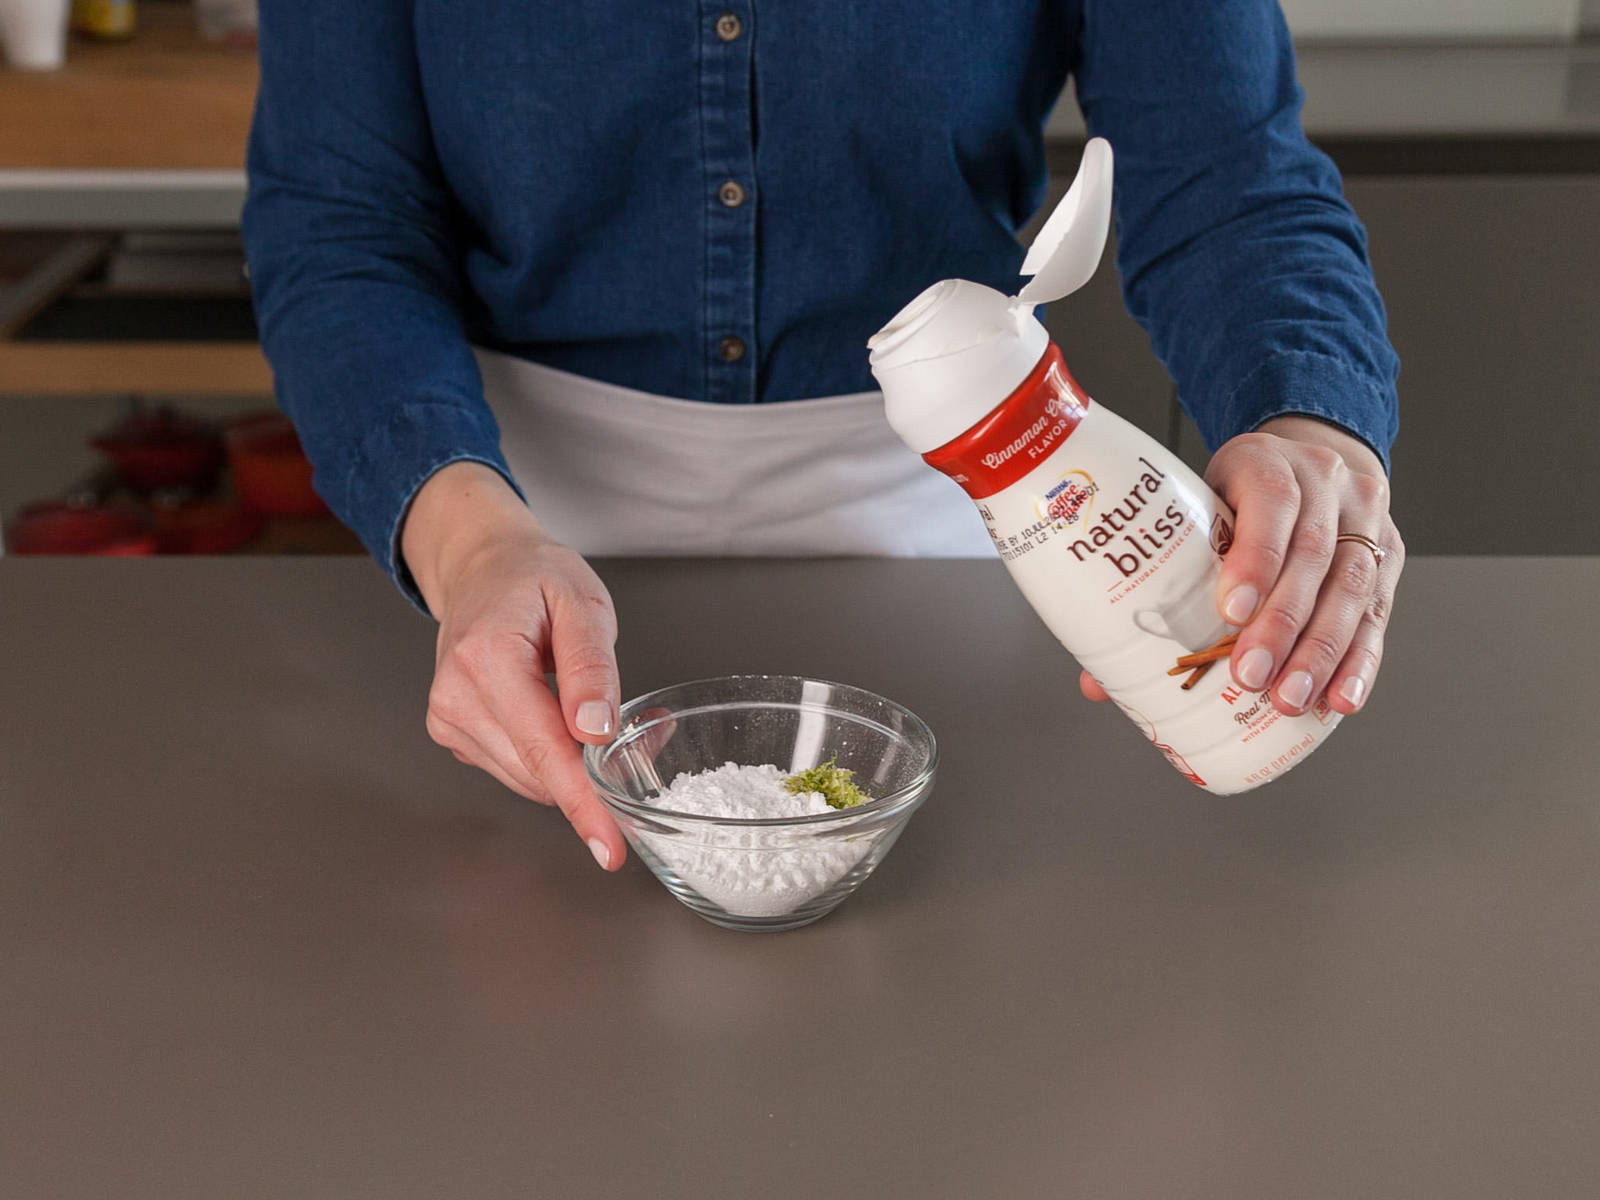 Whisk together powdered sugar, coffee creamer, and lime zest in small bowl. Drizzle over warm rolls. Enjoy!